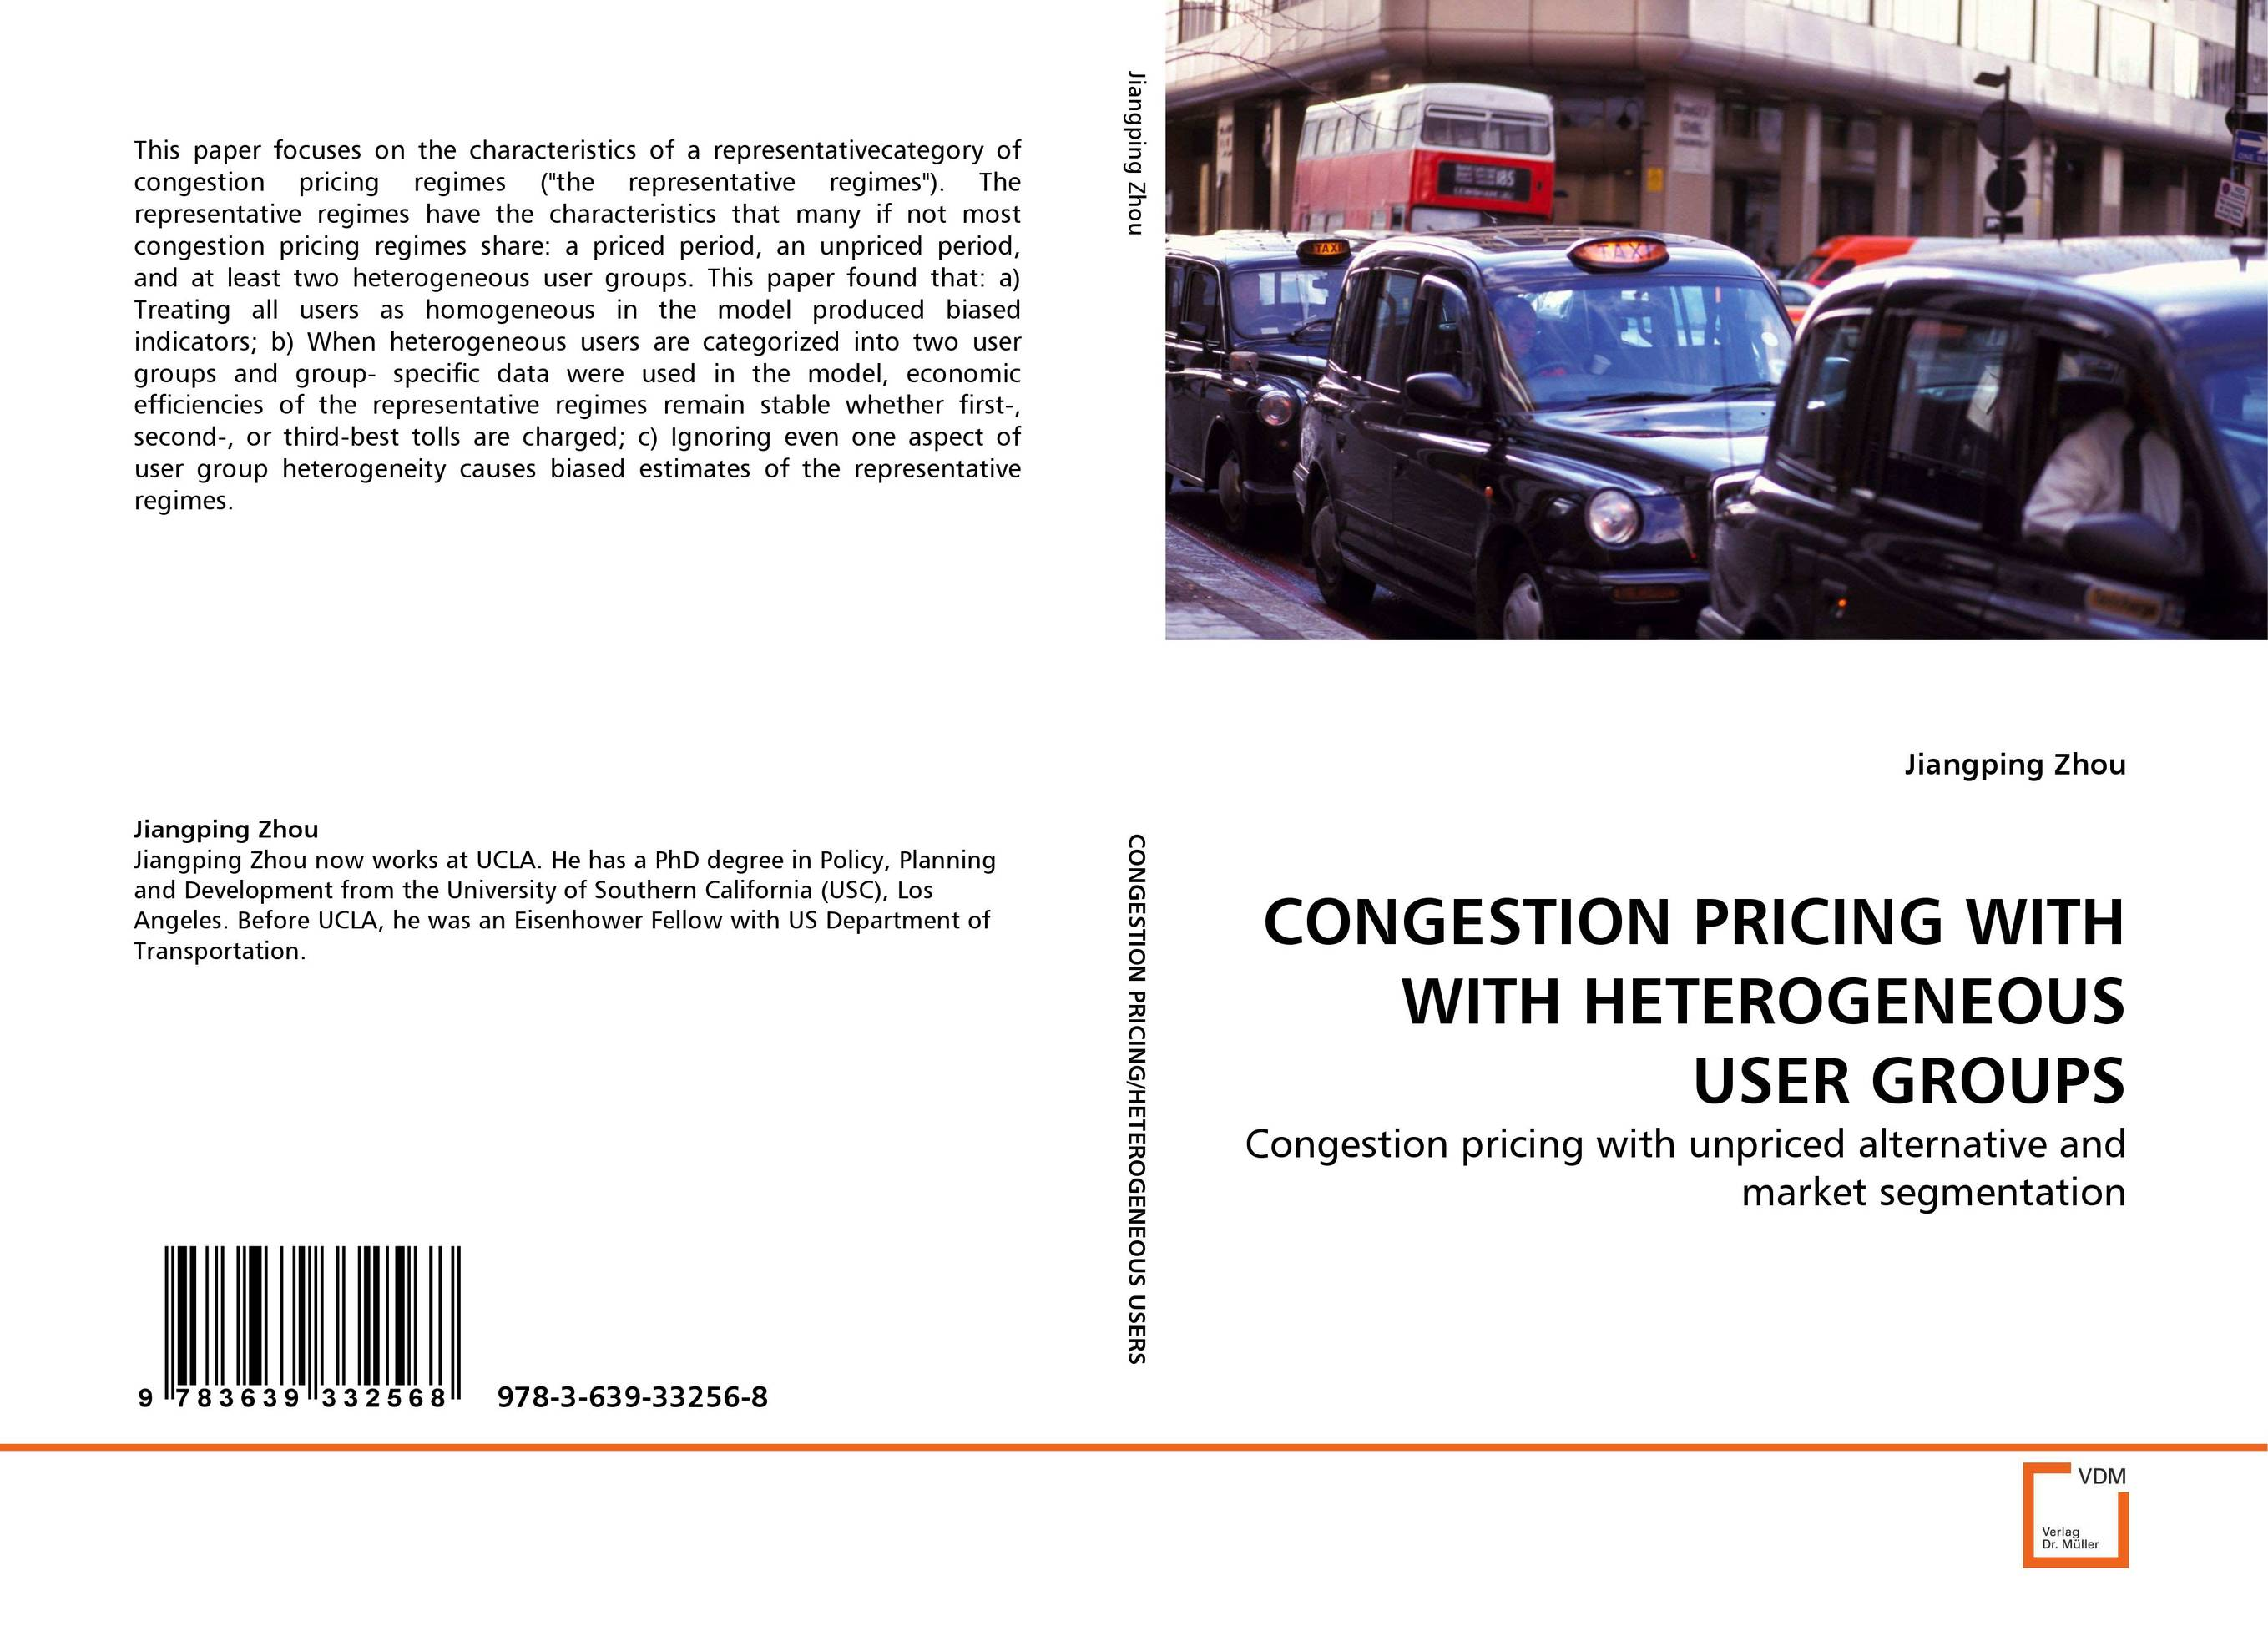 CONGESTION PRICING WITH WITH HETEROGENEOUS USER GROUPS